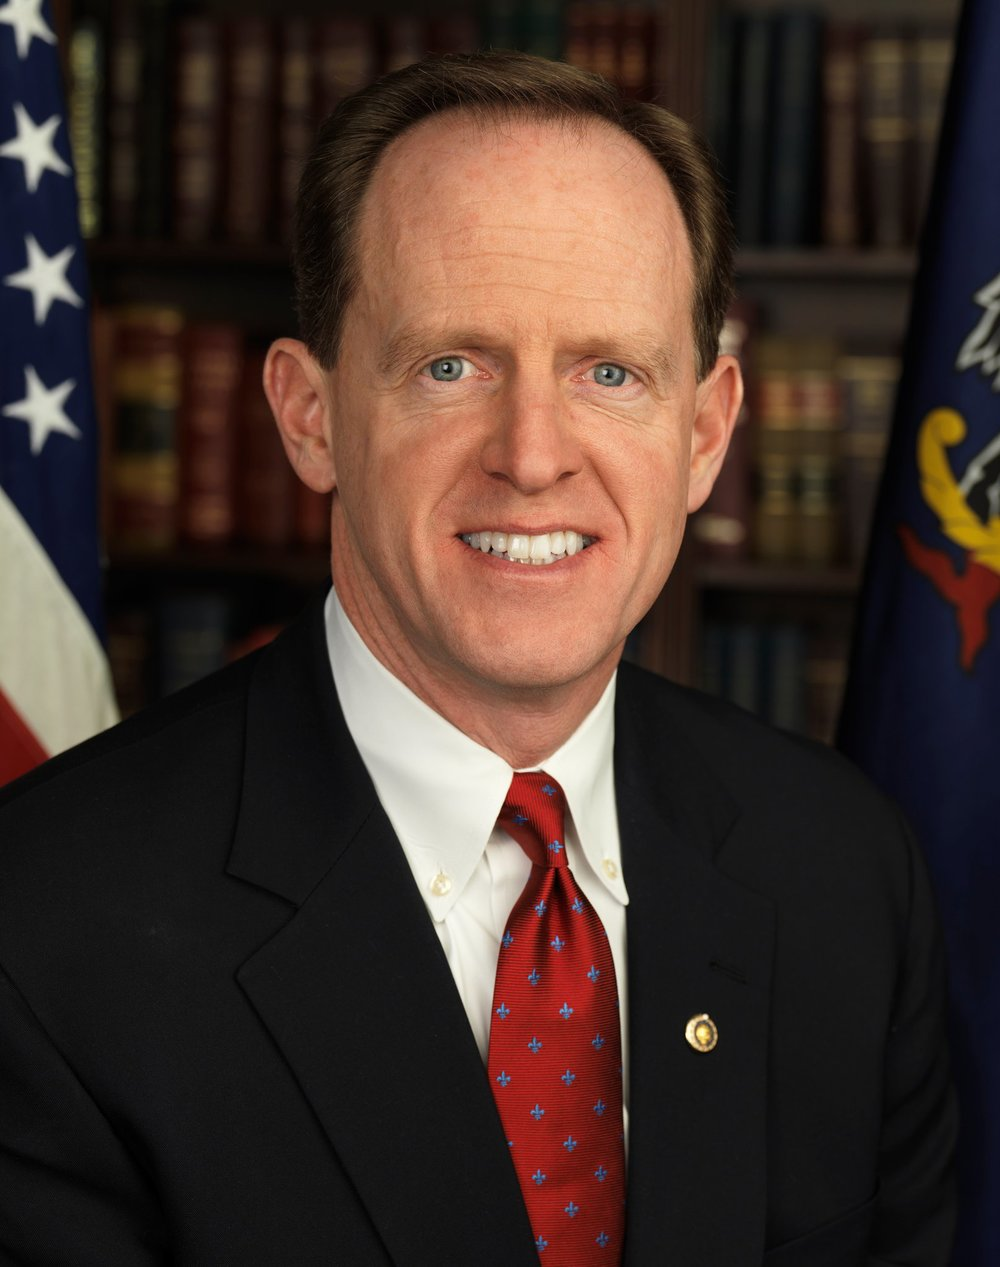 Pat_Toomey,_Official_Portrait,_112th_Congress.jpg